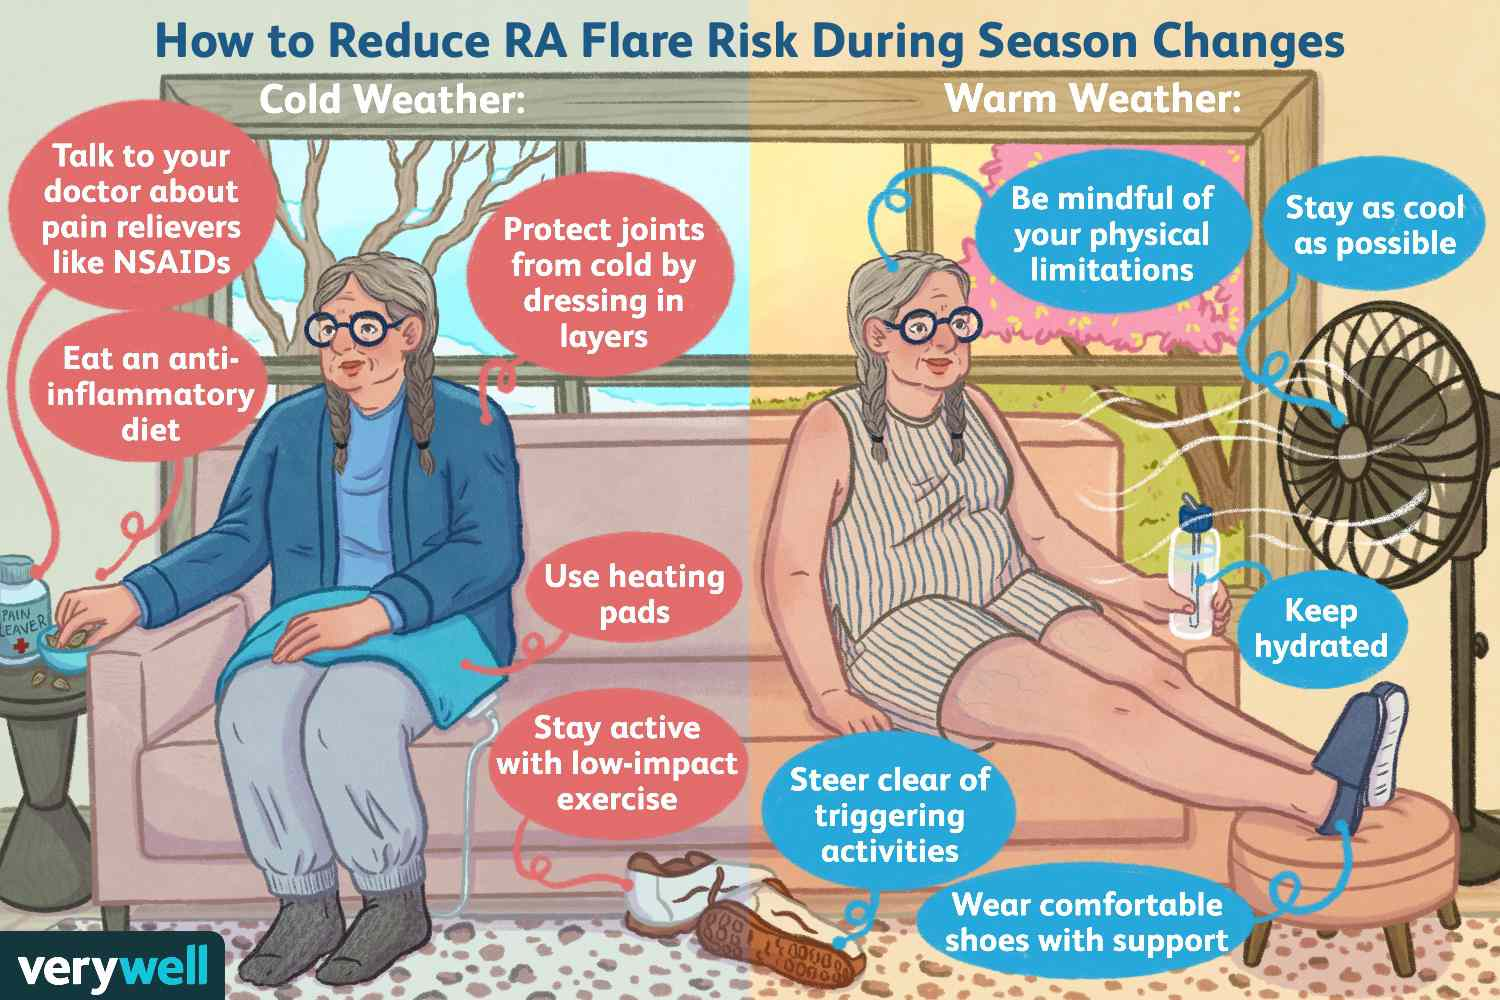 How to Reduce RA Flare Risk During Season Changes